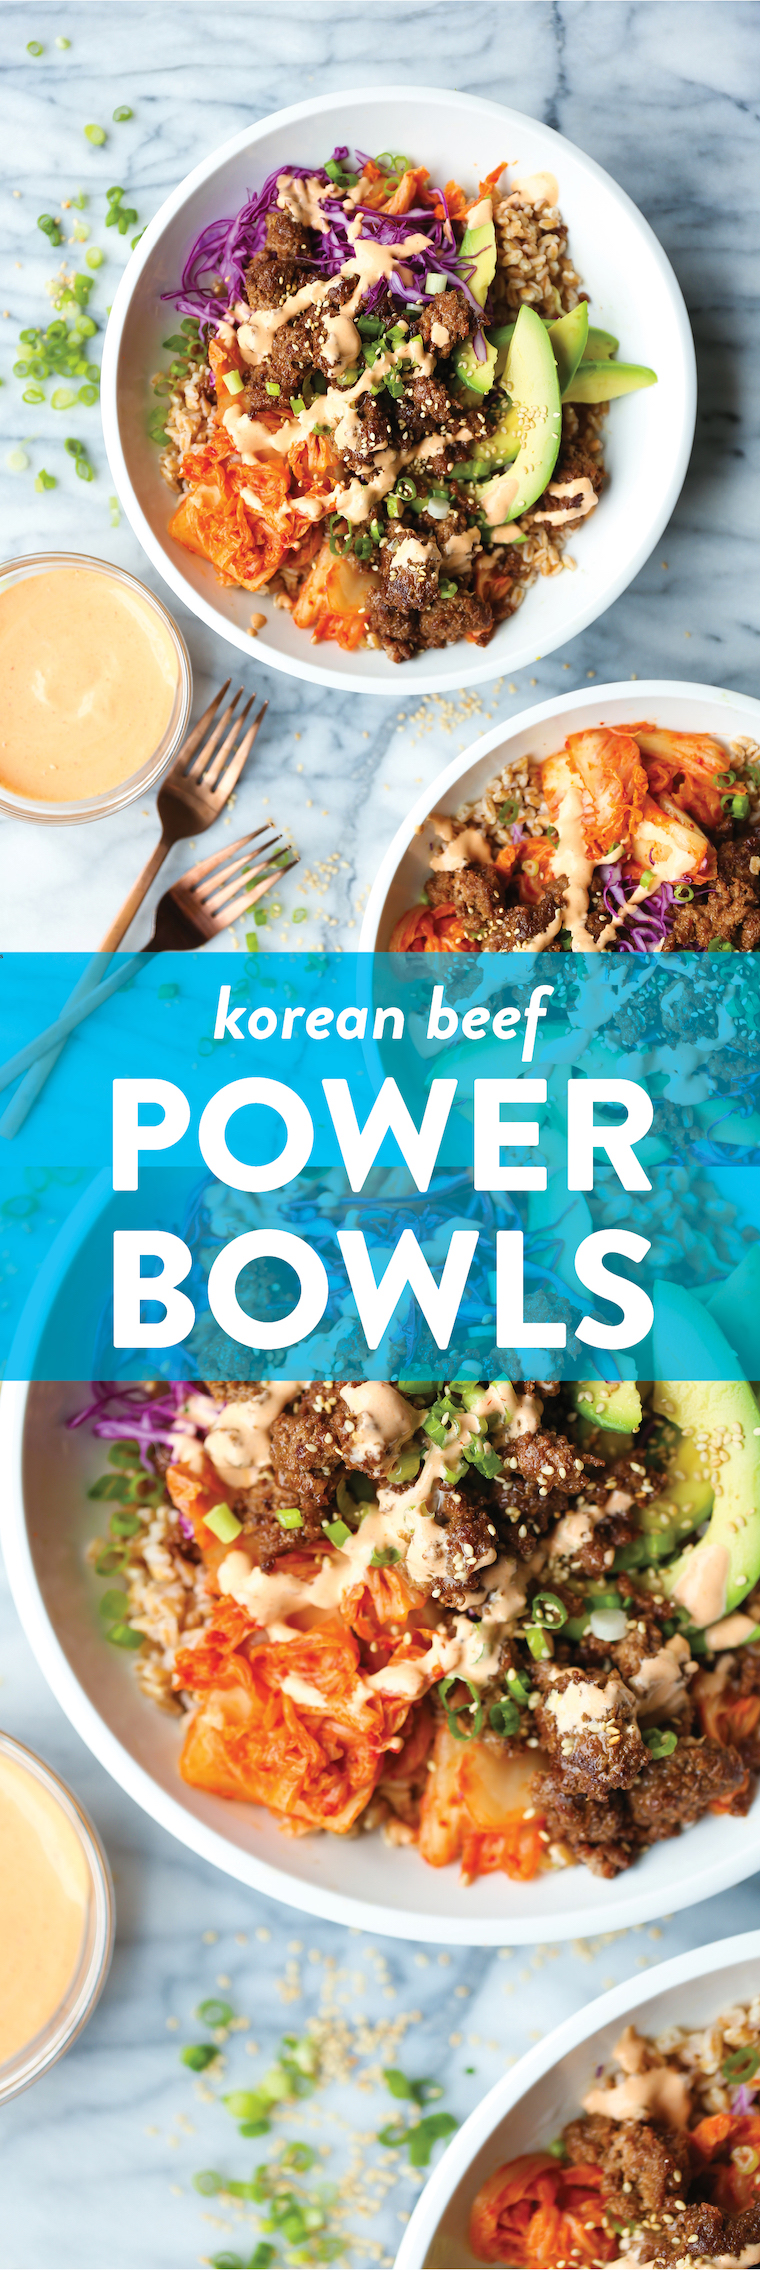 Korean Beef Power Bowls